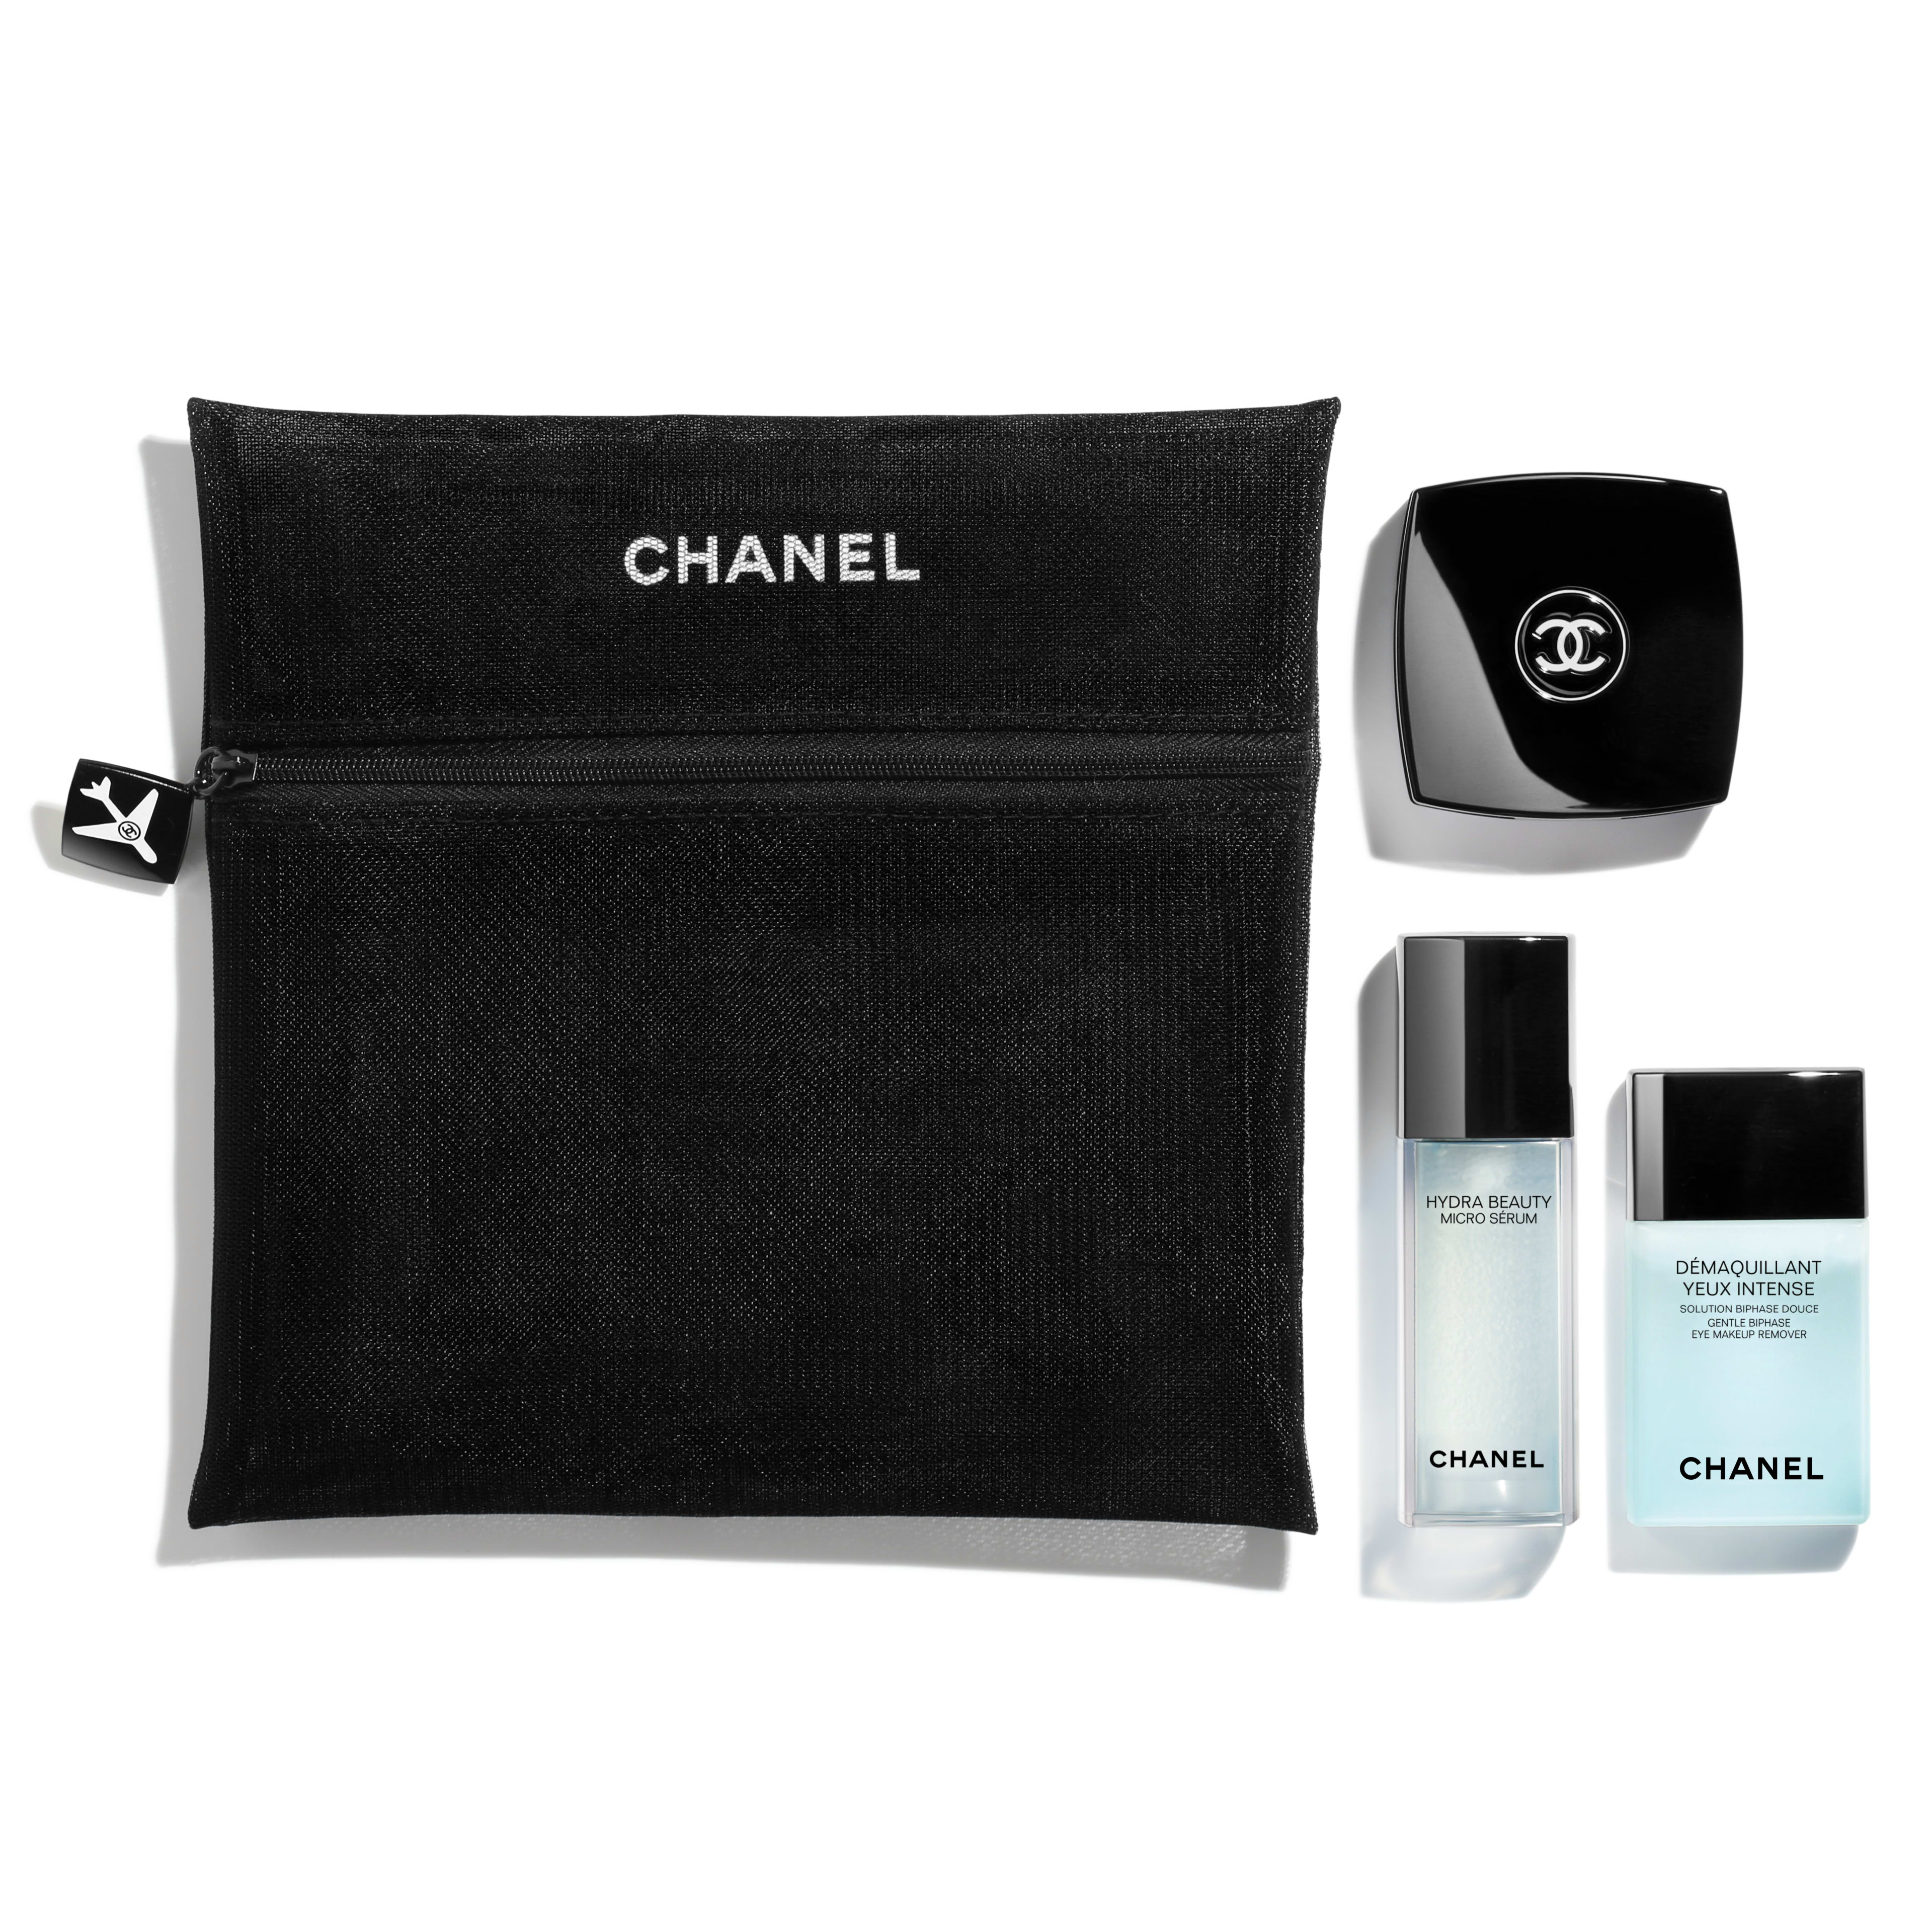 Chanel Hydra Beauty Gift Set The Art Of Mike Mignola